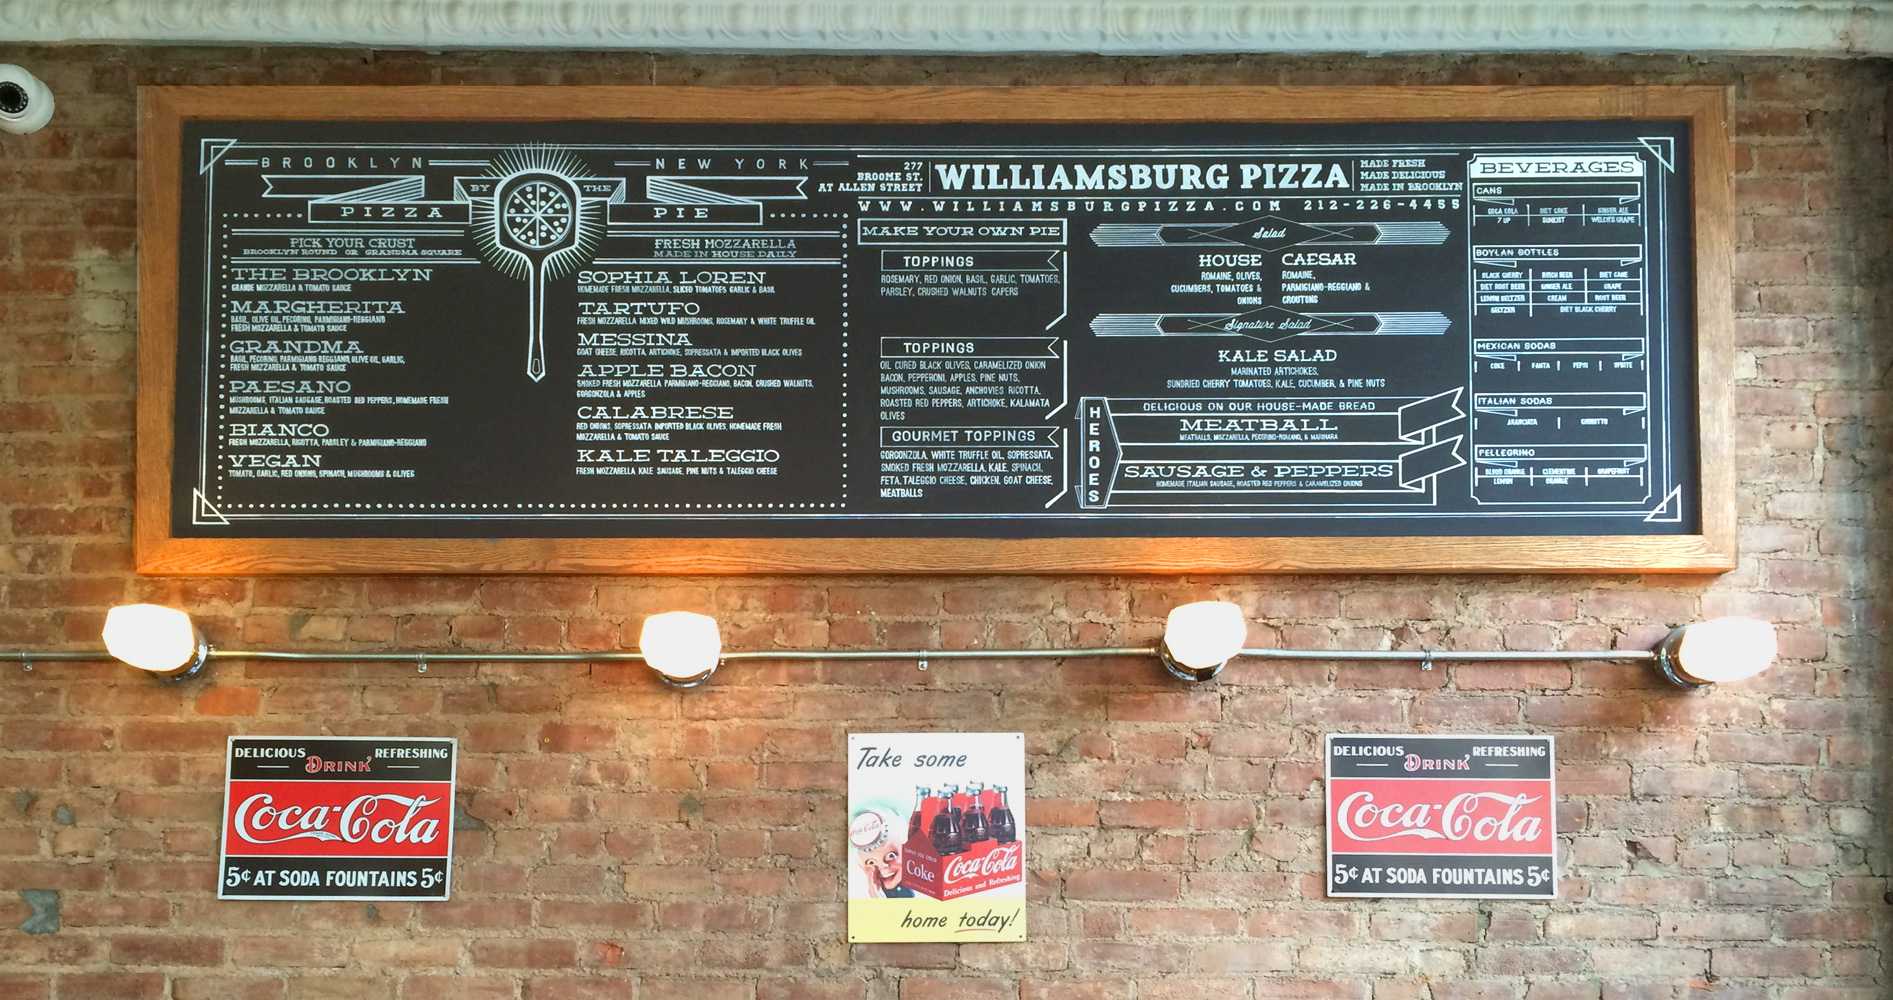 Williamsburg Pizza, Lower East Side